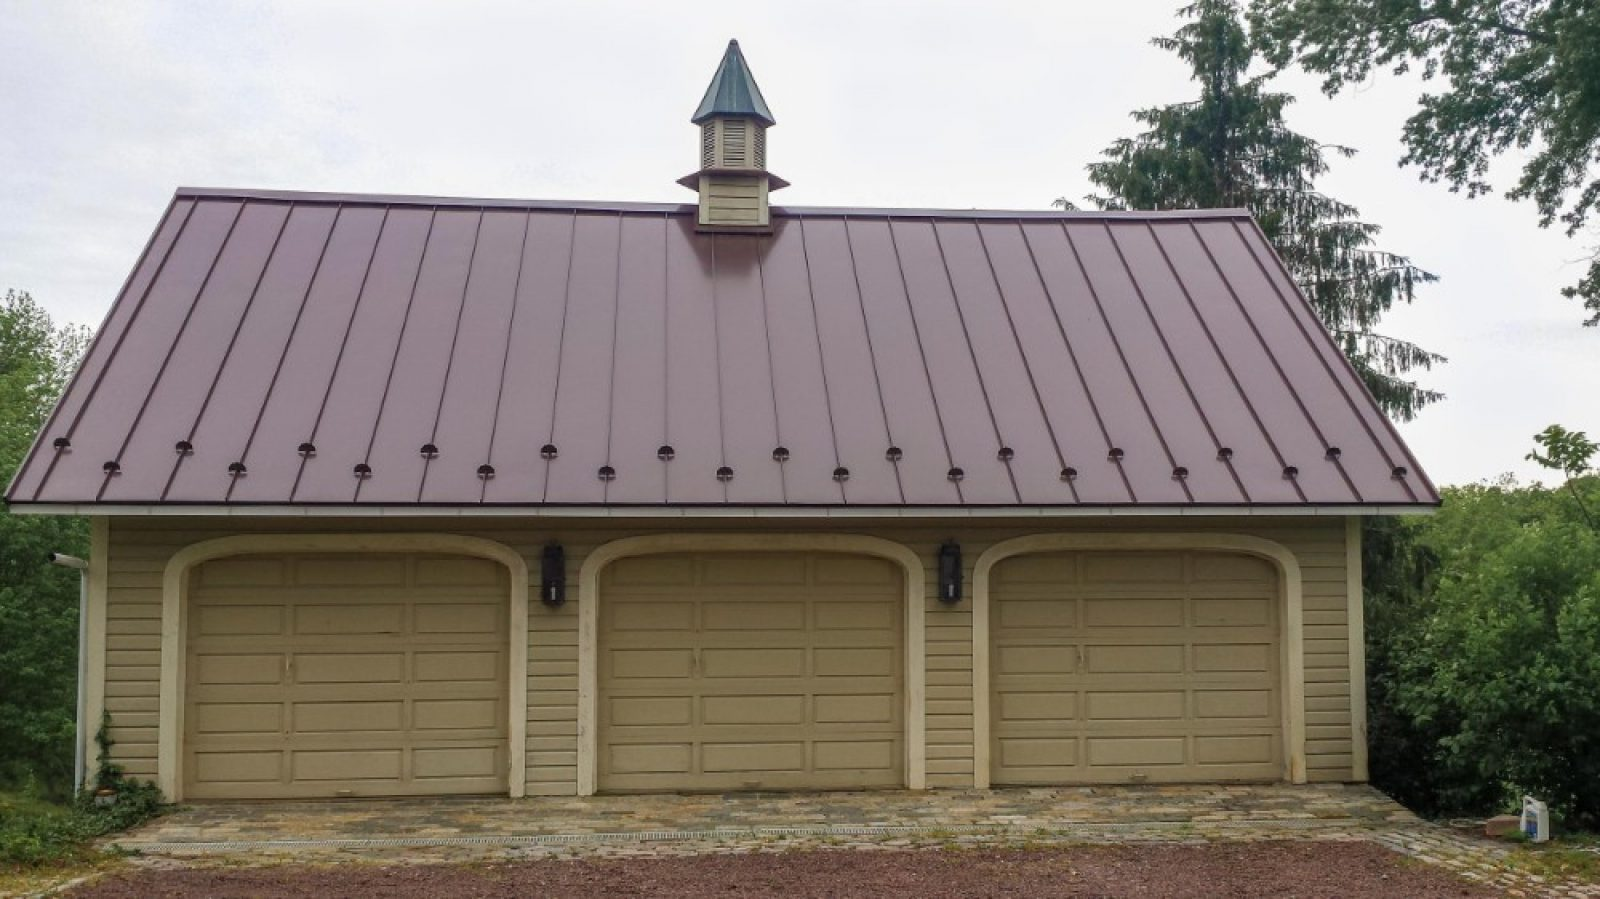 Roofing job by Hilllcrest Roofing and Siding.